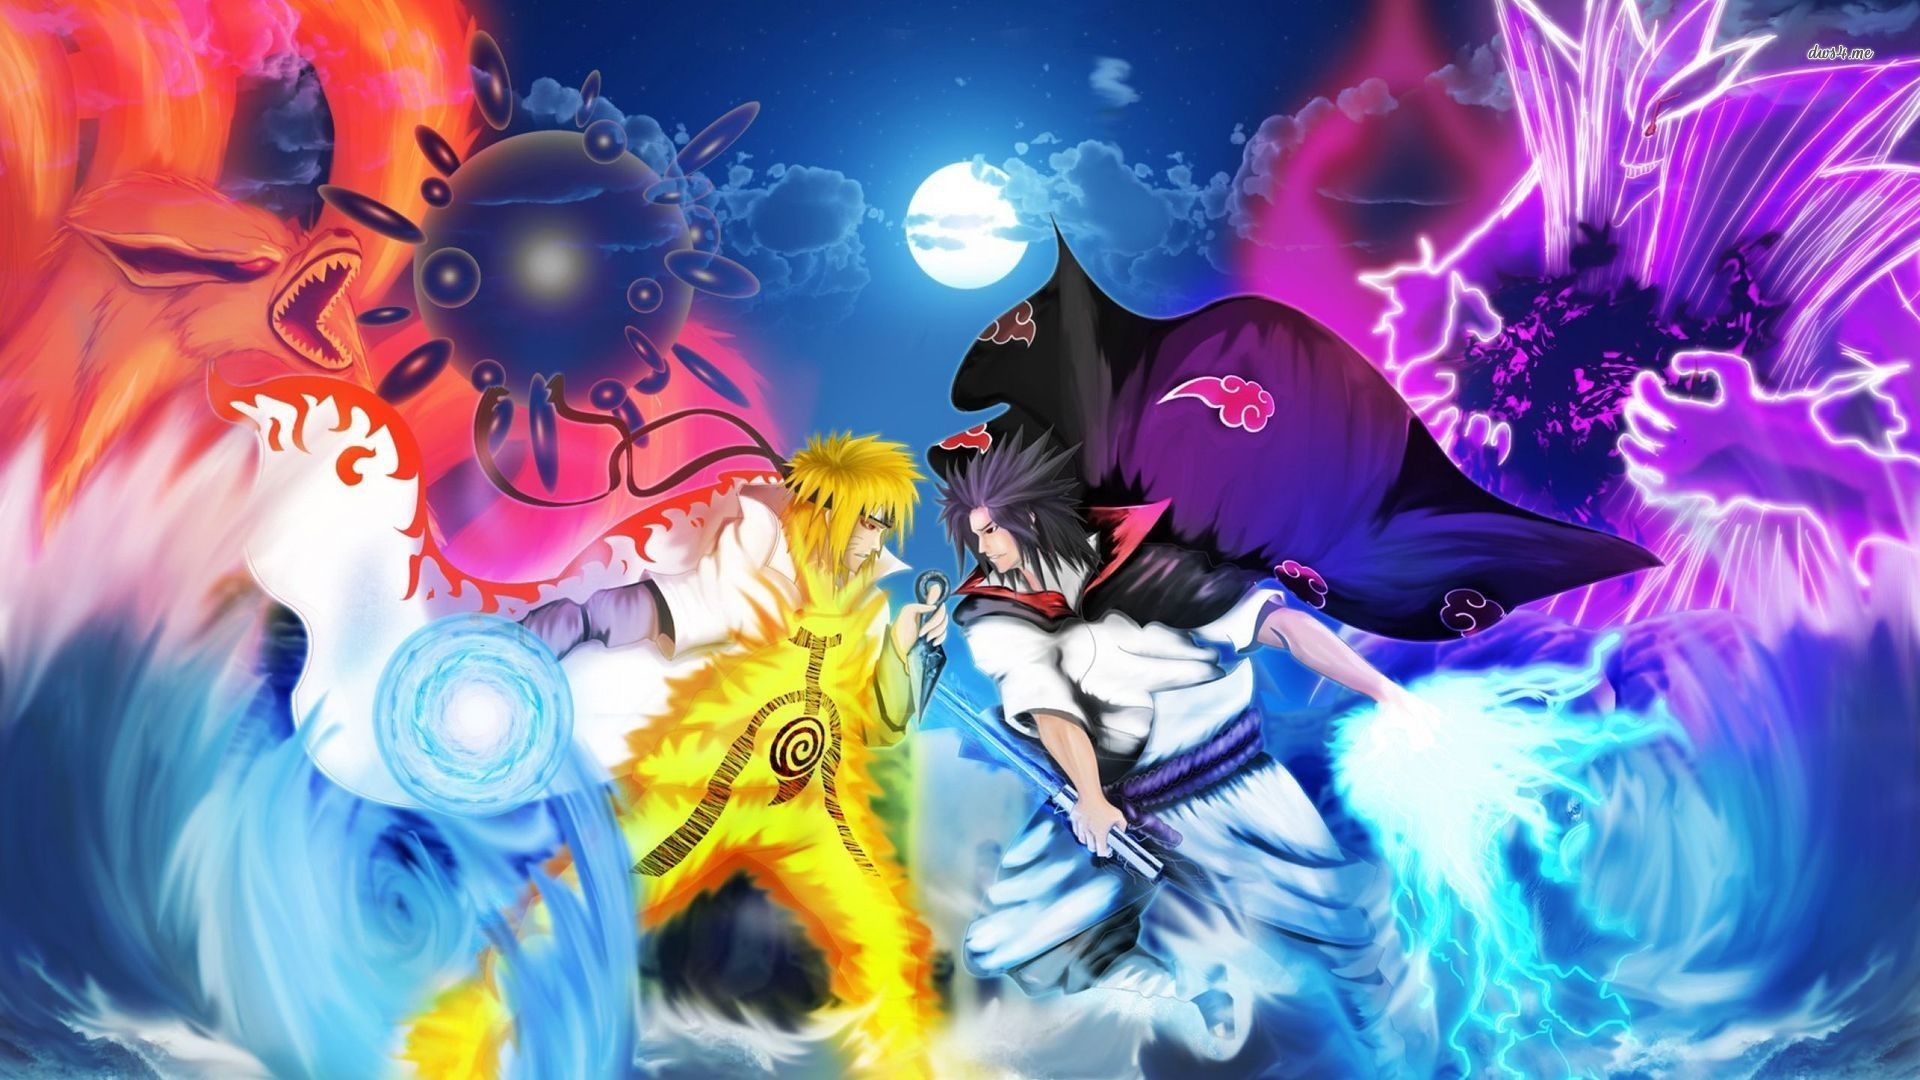 Find Hd Wallpapers For Your Desktop Mac Windows Apple Iphone Or Android Device Cool Anime Wallpapers Wallpaper Naruto Shippuden Naruto And Sasuke Wallpaper